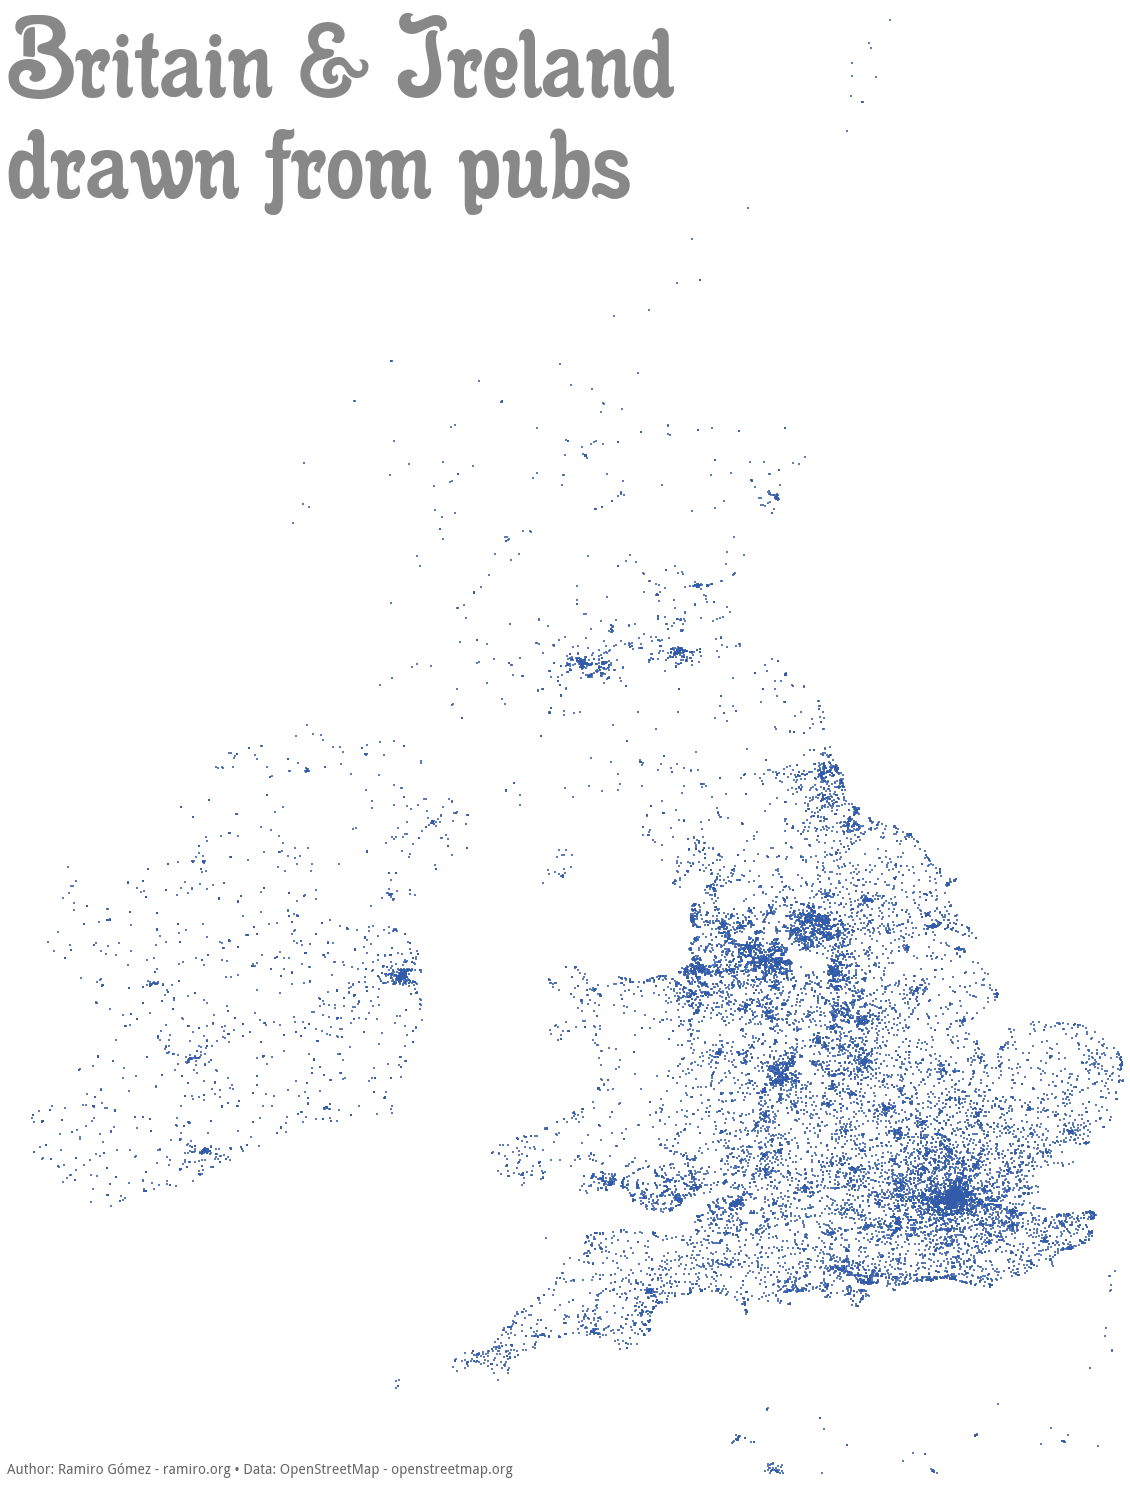 Drawing a Map from Pub Locations with the Matplotlib Basemap